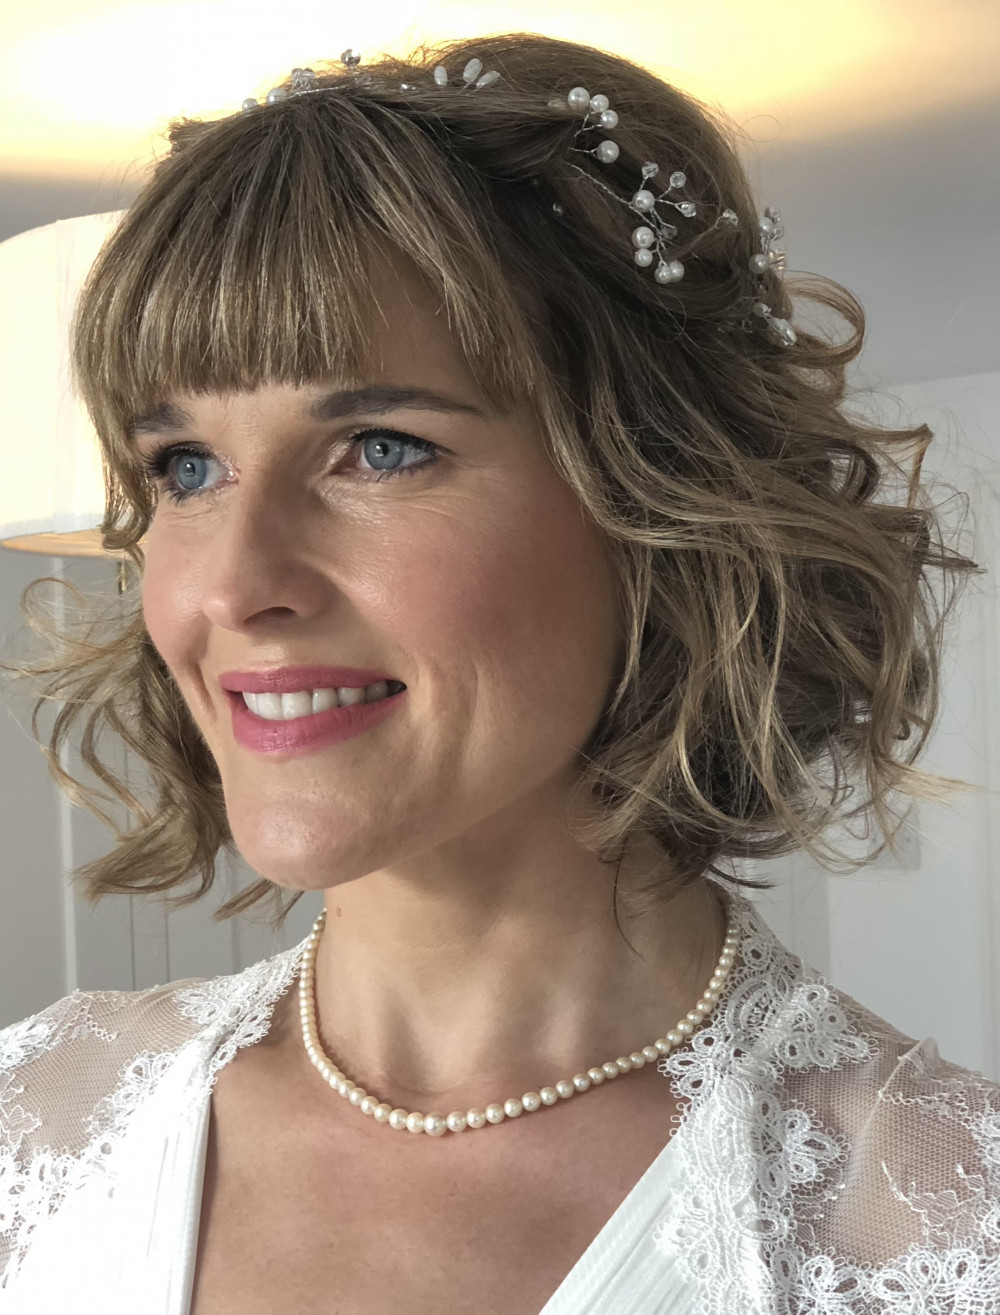 Natural, glowing skin and soft curls for this beautiful bride. - Make Me Bridal Artist: Lee O'D Makeup & Hair. Photography by: Lee O'D. #dewyskin #glowingskin #softcurls #shorthair #bob #shorthairbride #maturebride